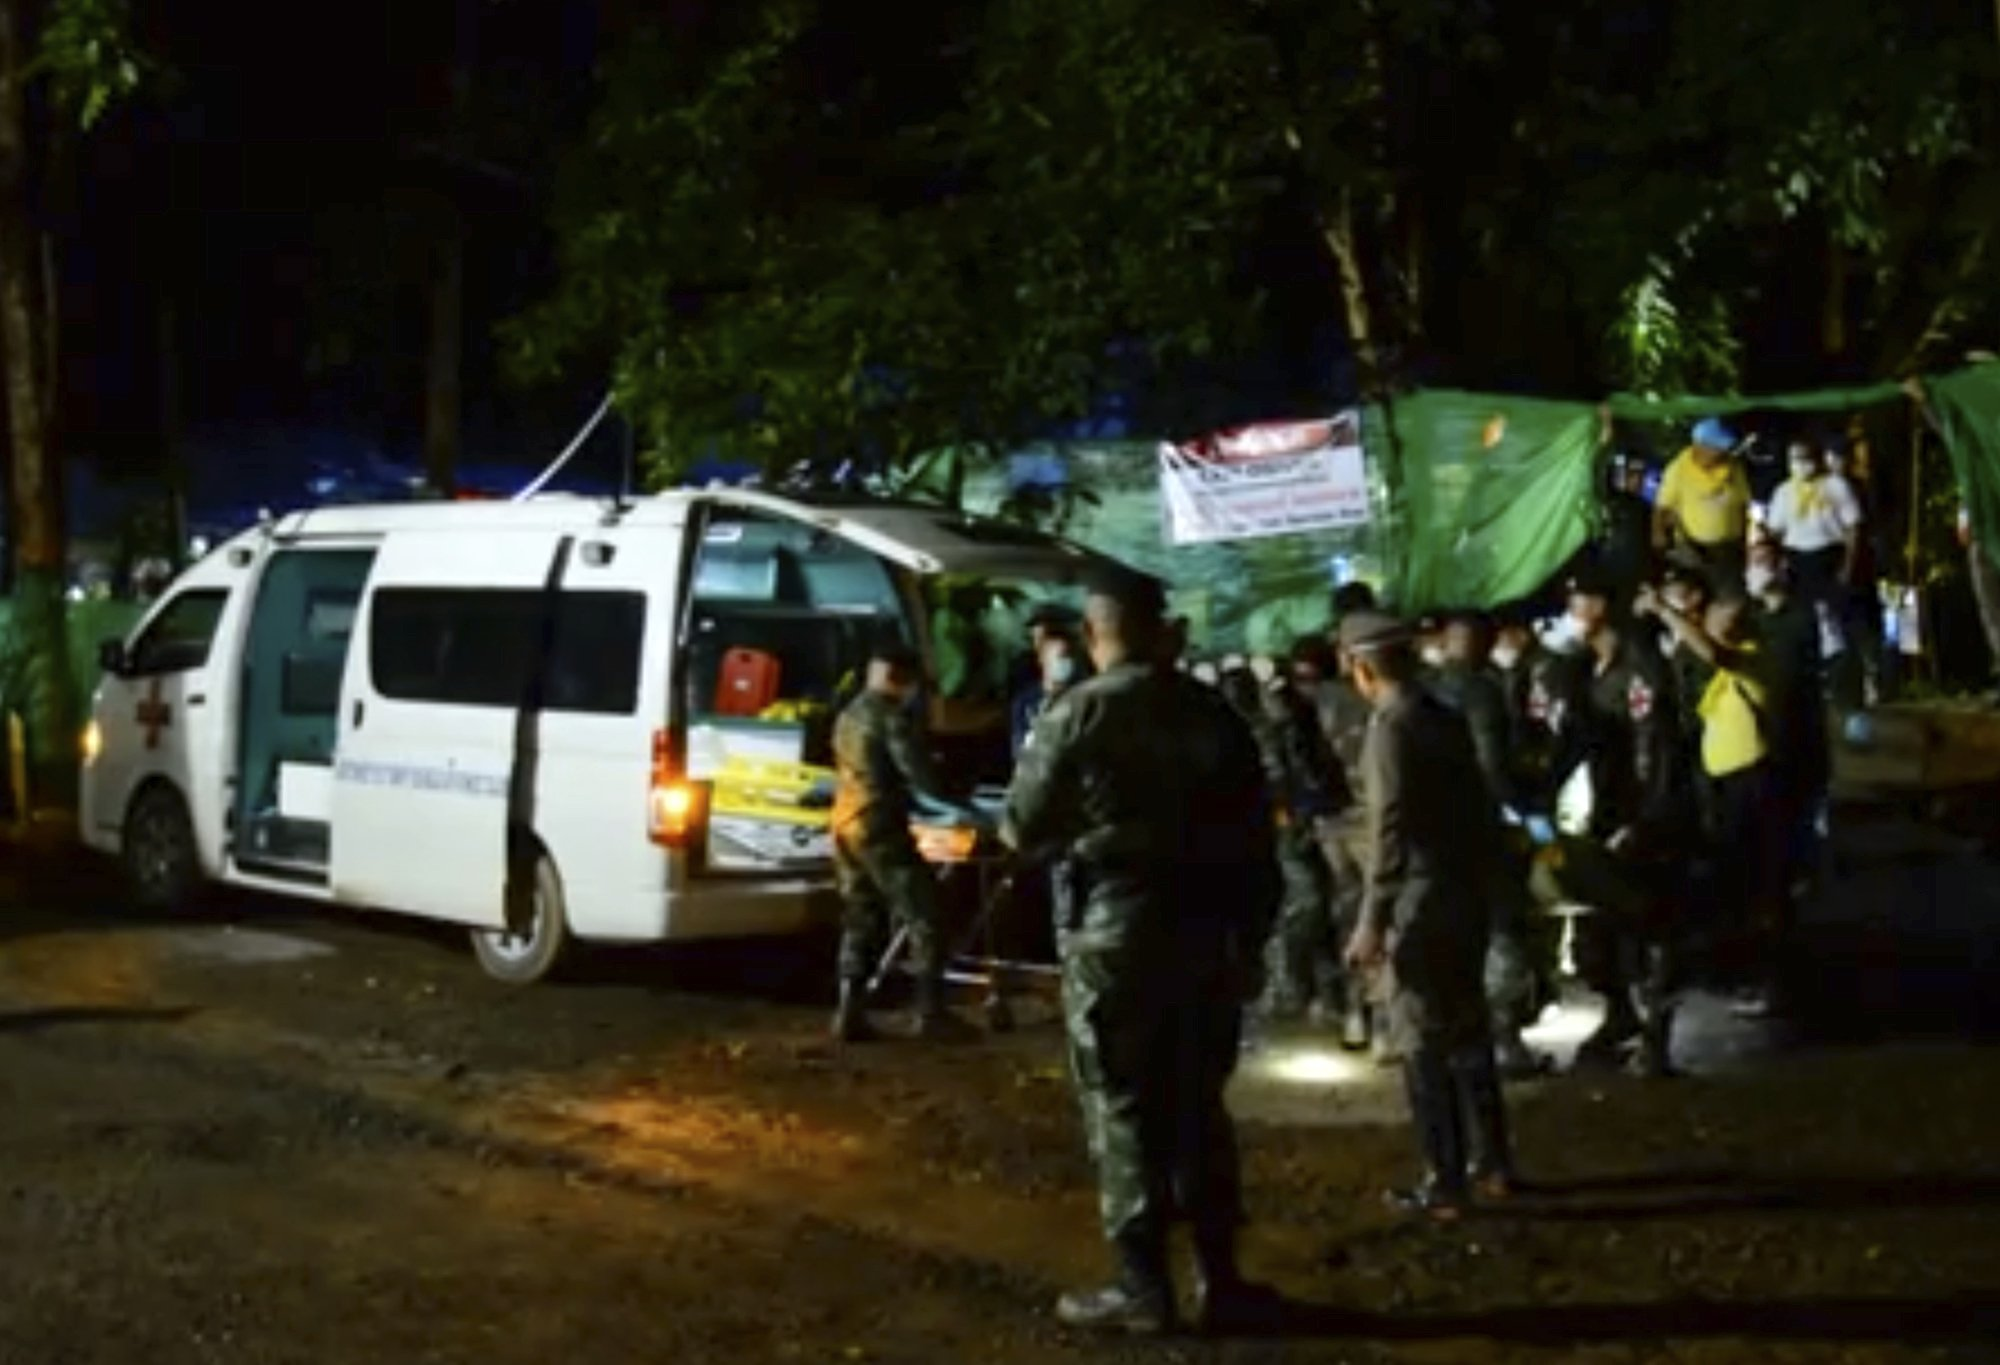 4 rescued from Thai cave in risky operation; 9 remain inside